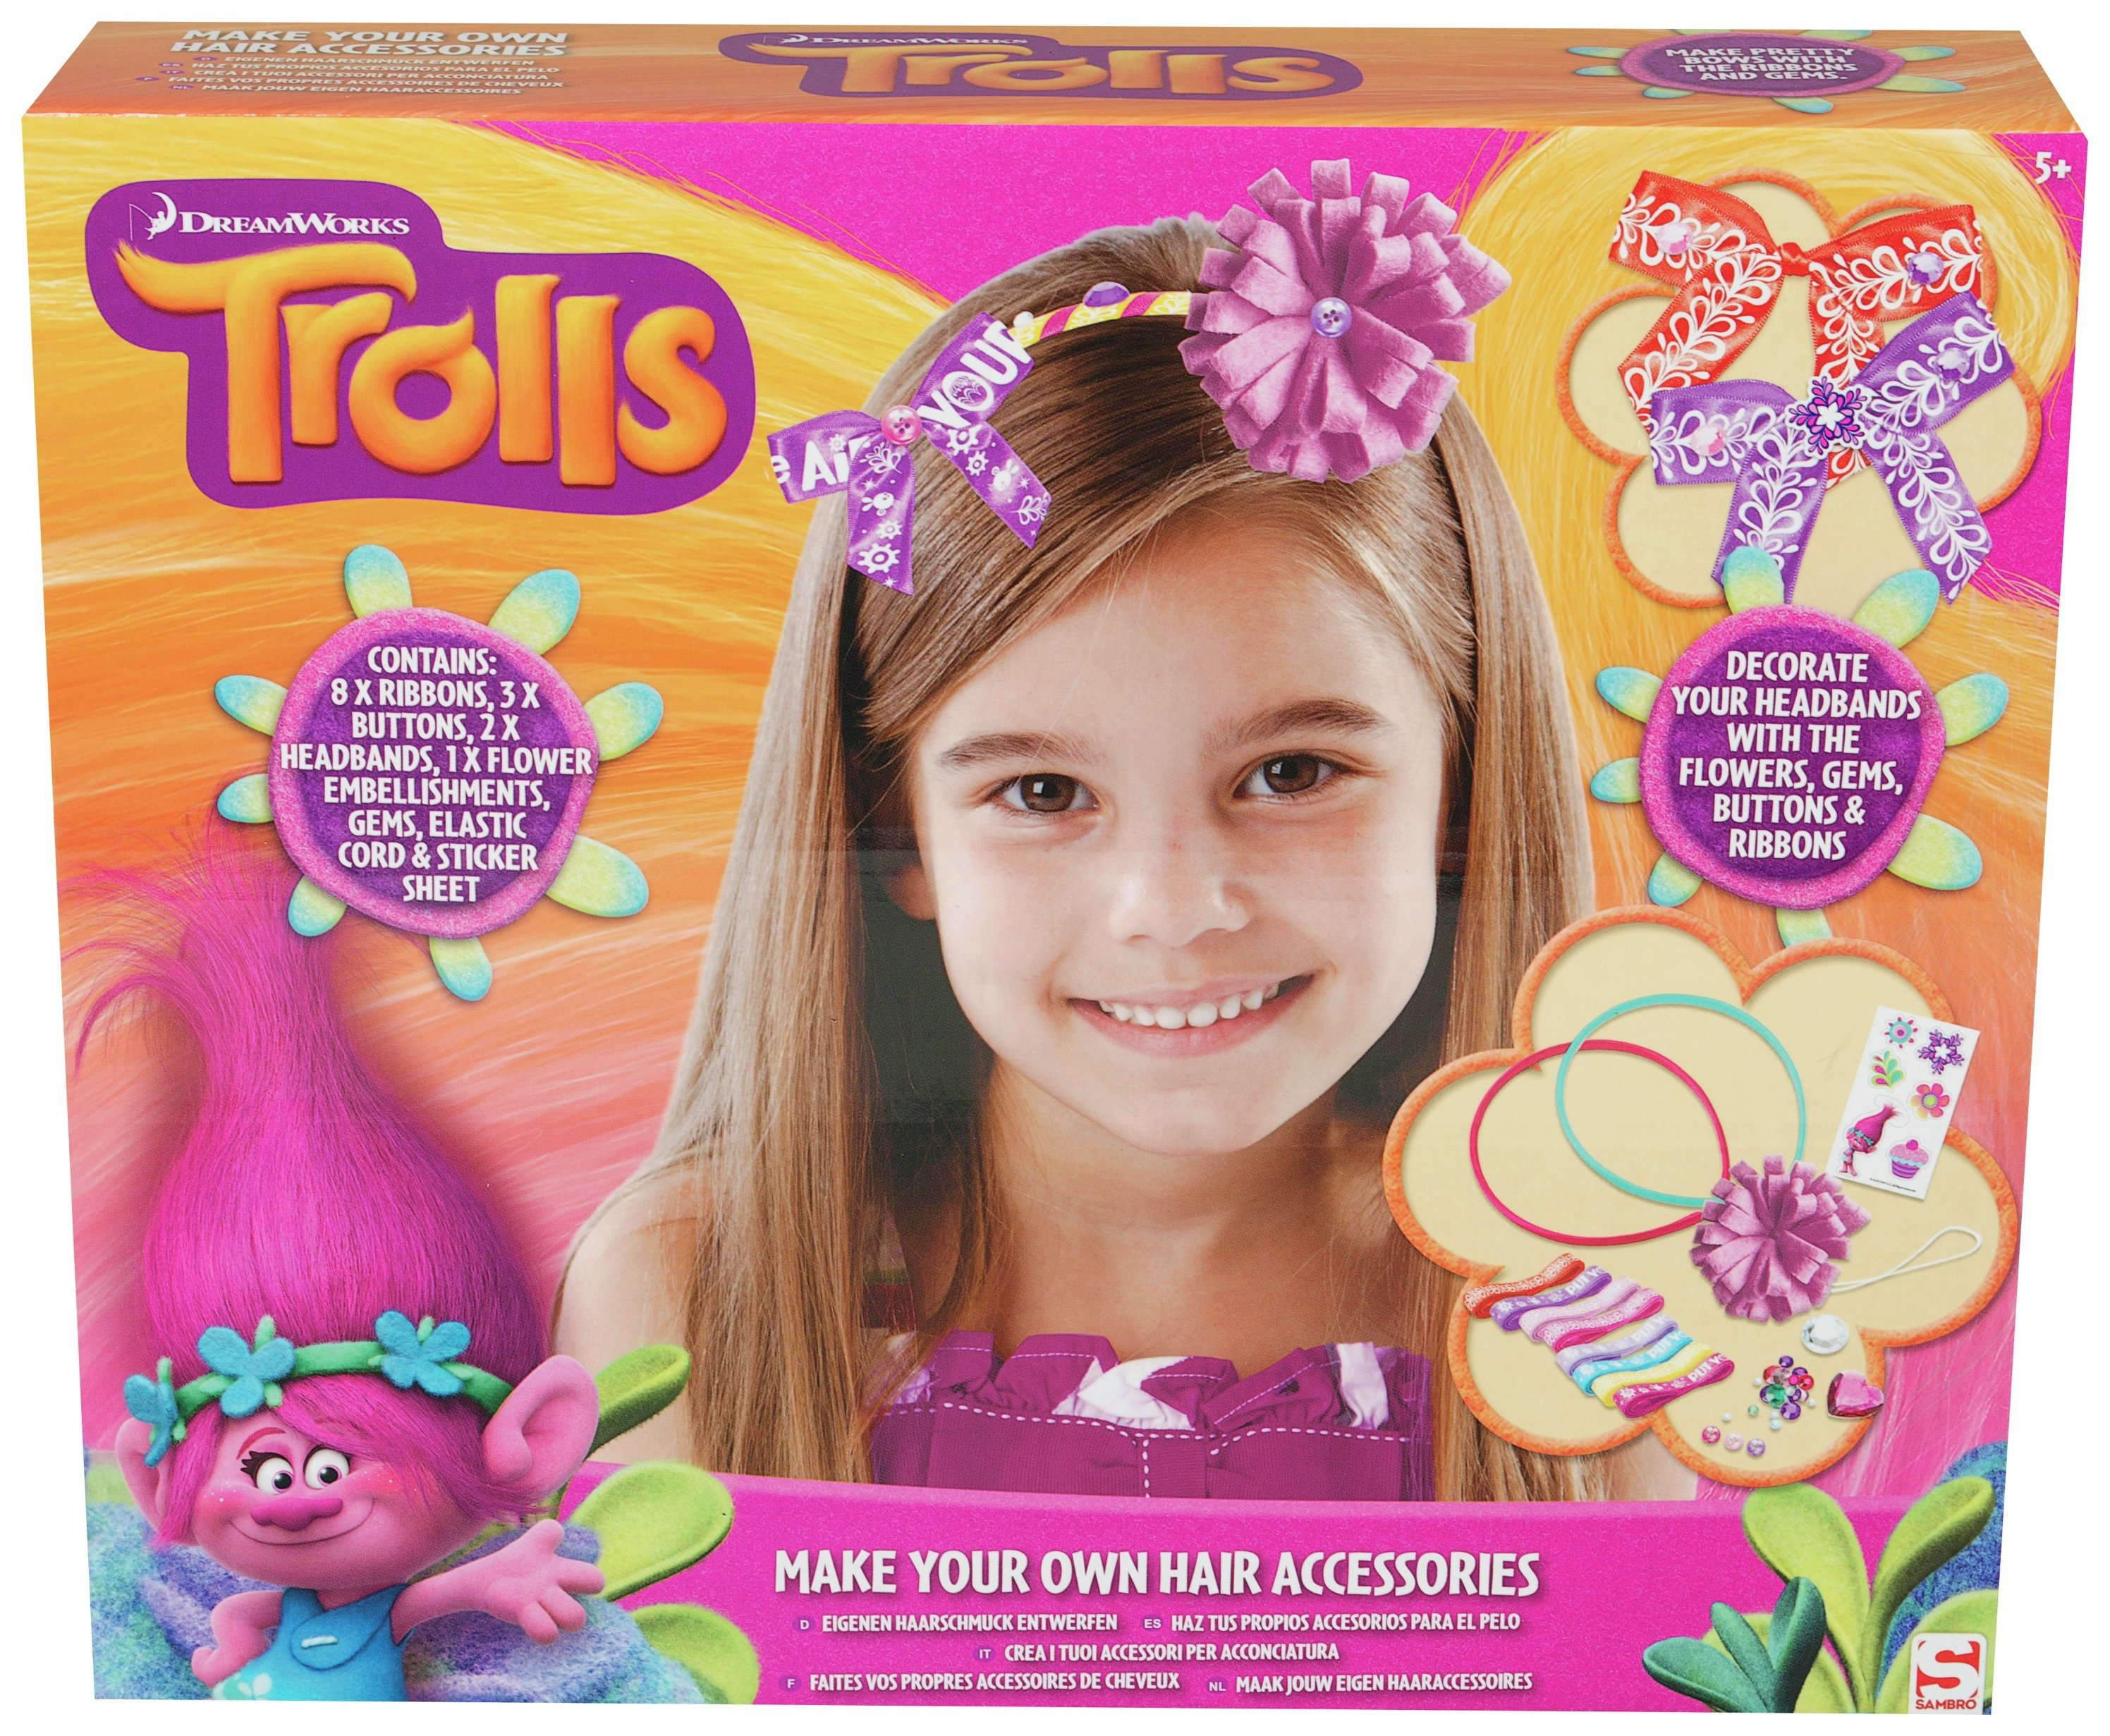 Image of Trolls Make Your Own Hair Accessories.